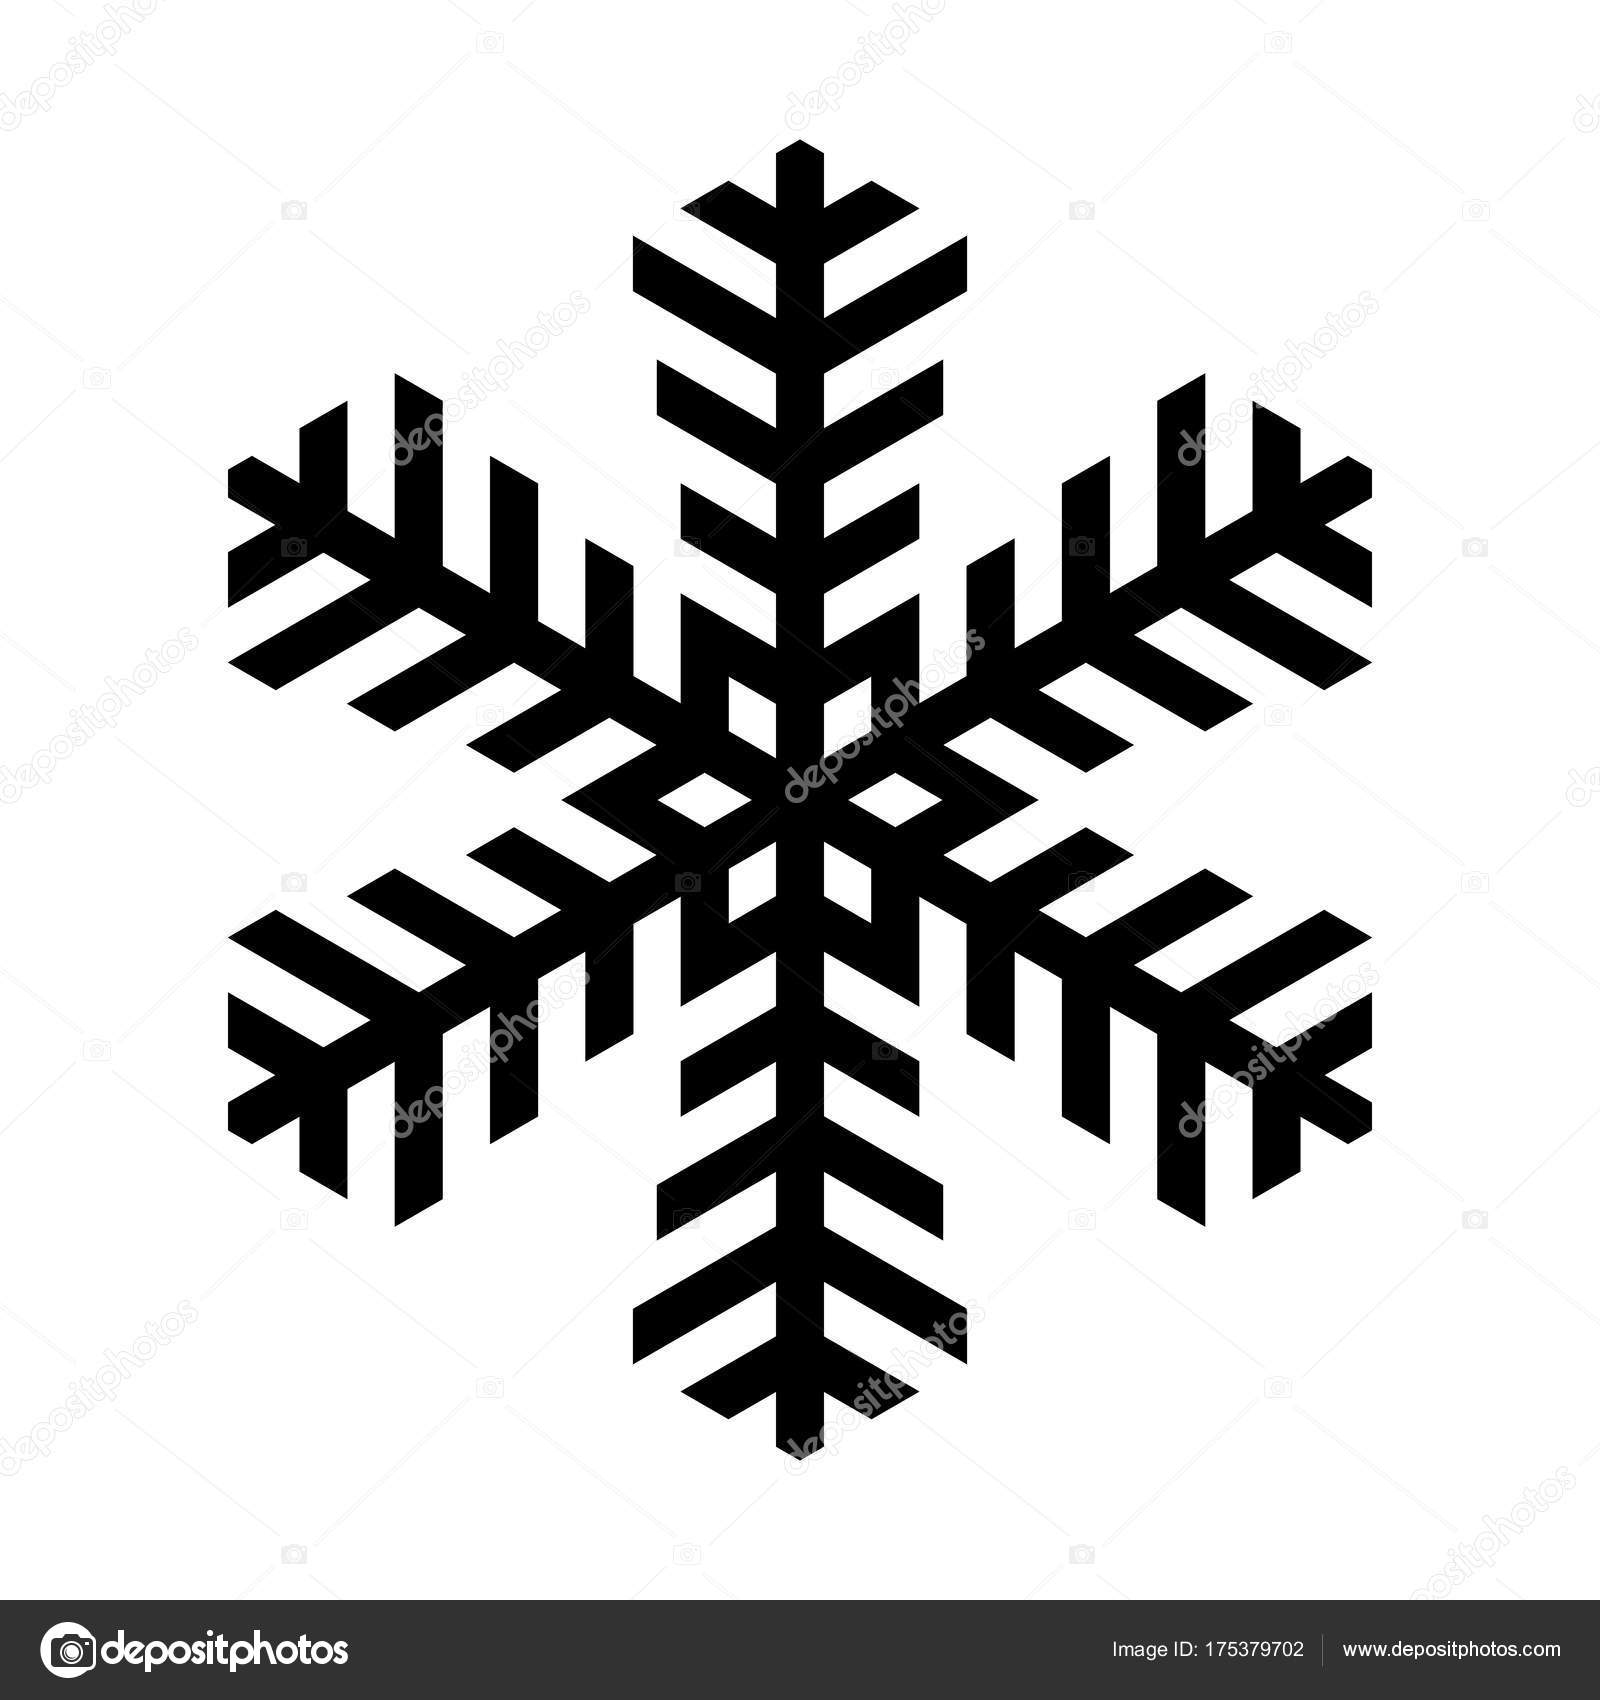 Snowflake icon. Christmas and winter theme. Simple flat